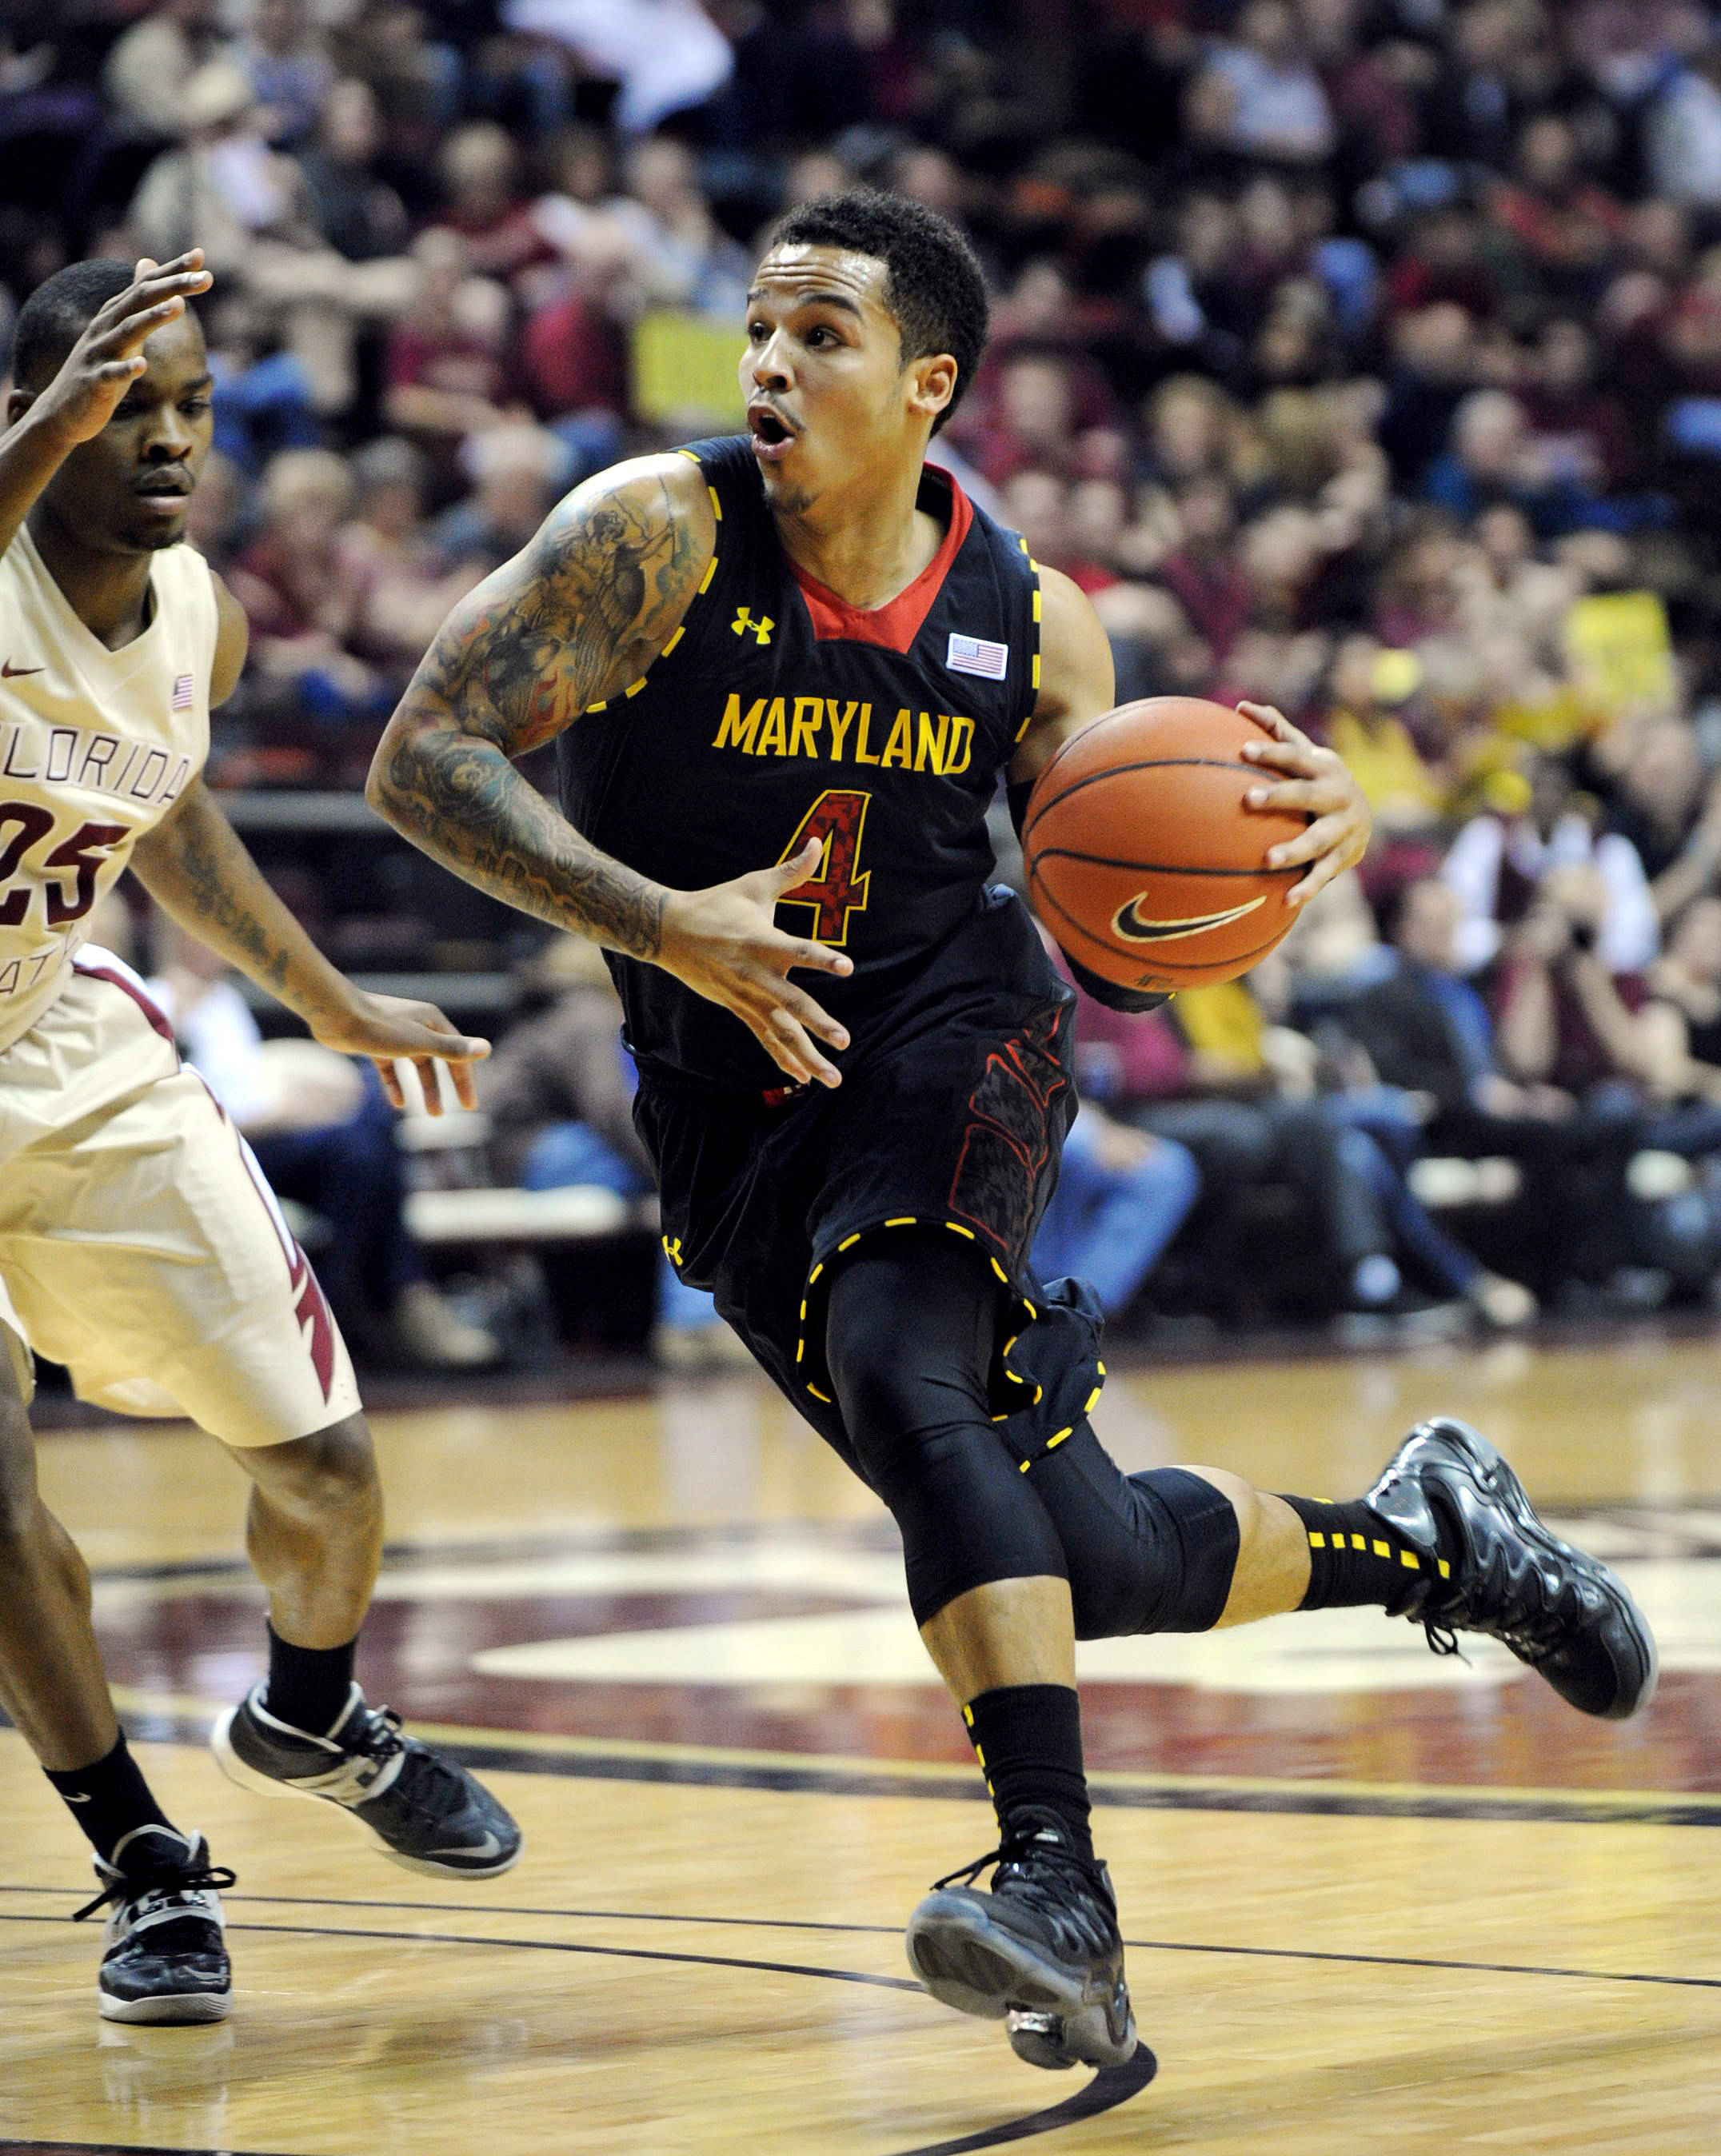 Jan 12, 2014; Tallahassee, FL, USA; Maryland Terrapins guard Seth Allen (4) moves the ball past Florida State Seminoles guard Aaron Thomas (25) during the first half of the game at the Donald L. Tucker Center. Mandatory Credit: Melina Vastola-USA TODAY Sports